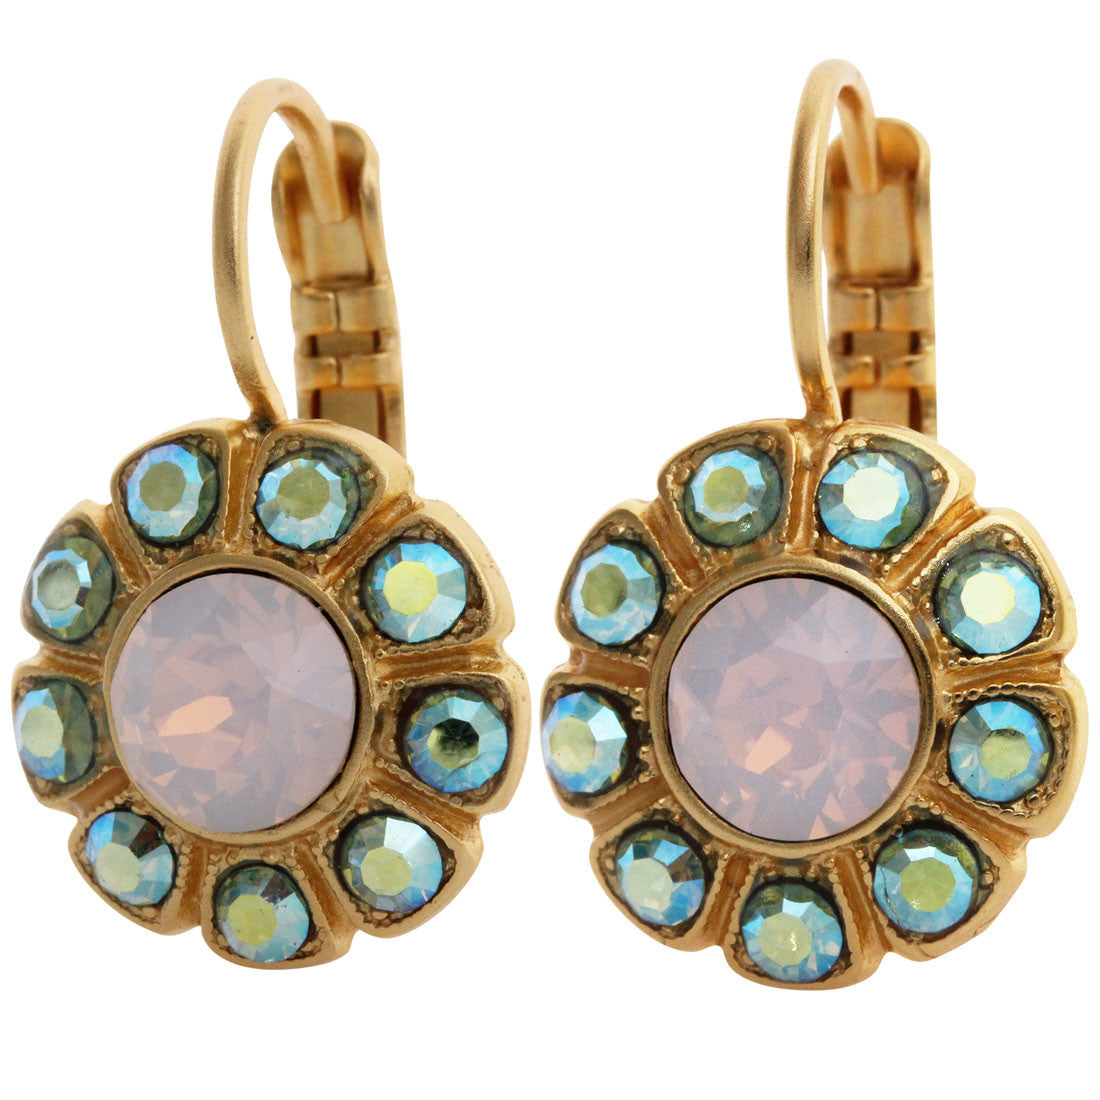 Mariana Gold Plated Sunflower Swarovski Crystal Earrings, Eternity 1131 1028yg